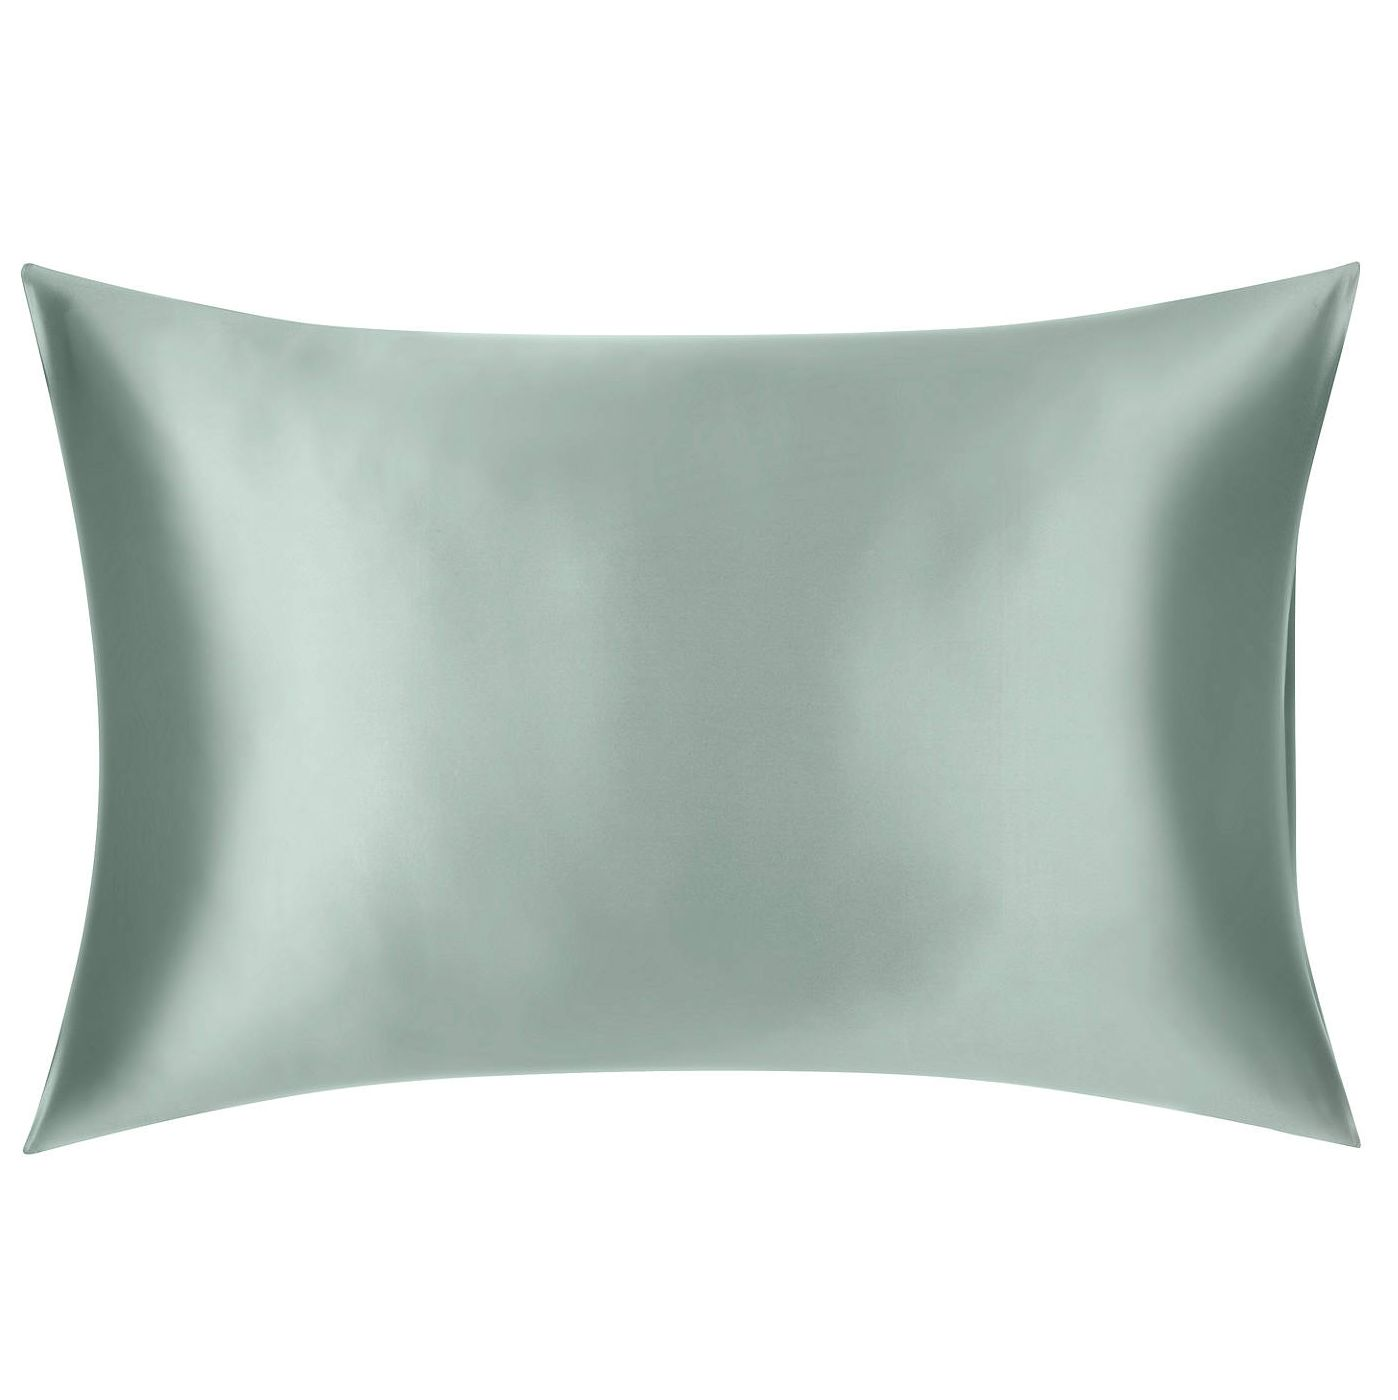 John Lewis & Partners The Ultimate Collection Silk Standard Pillowcase